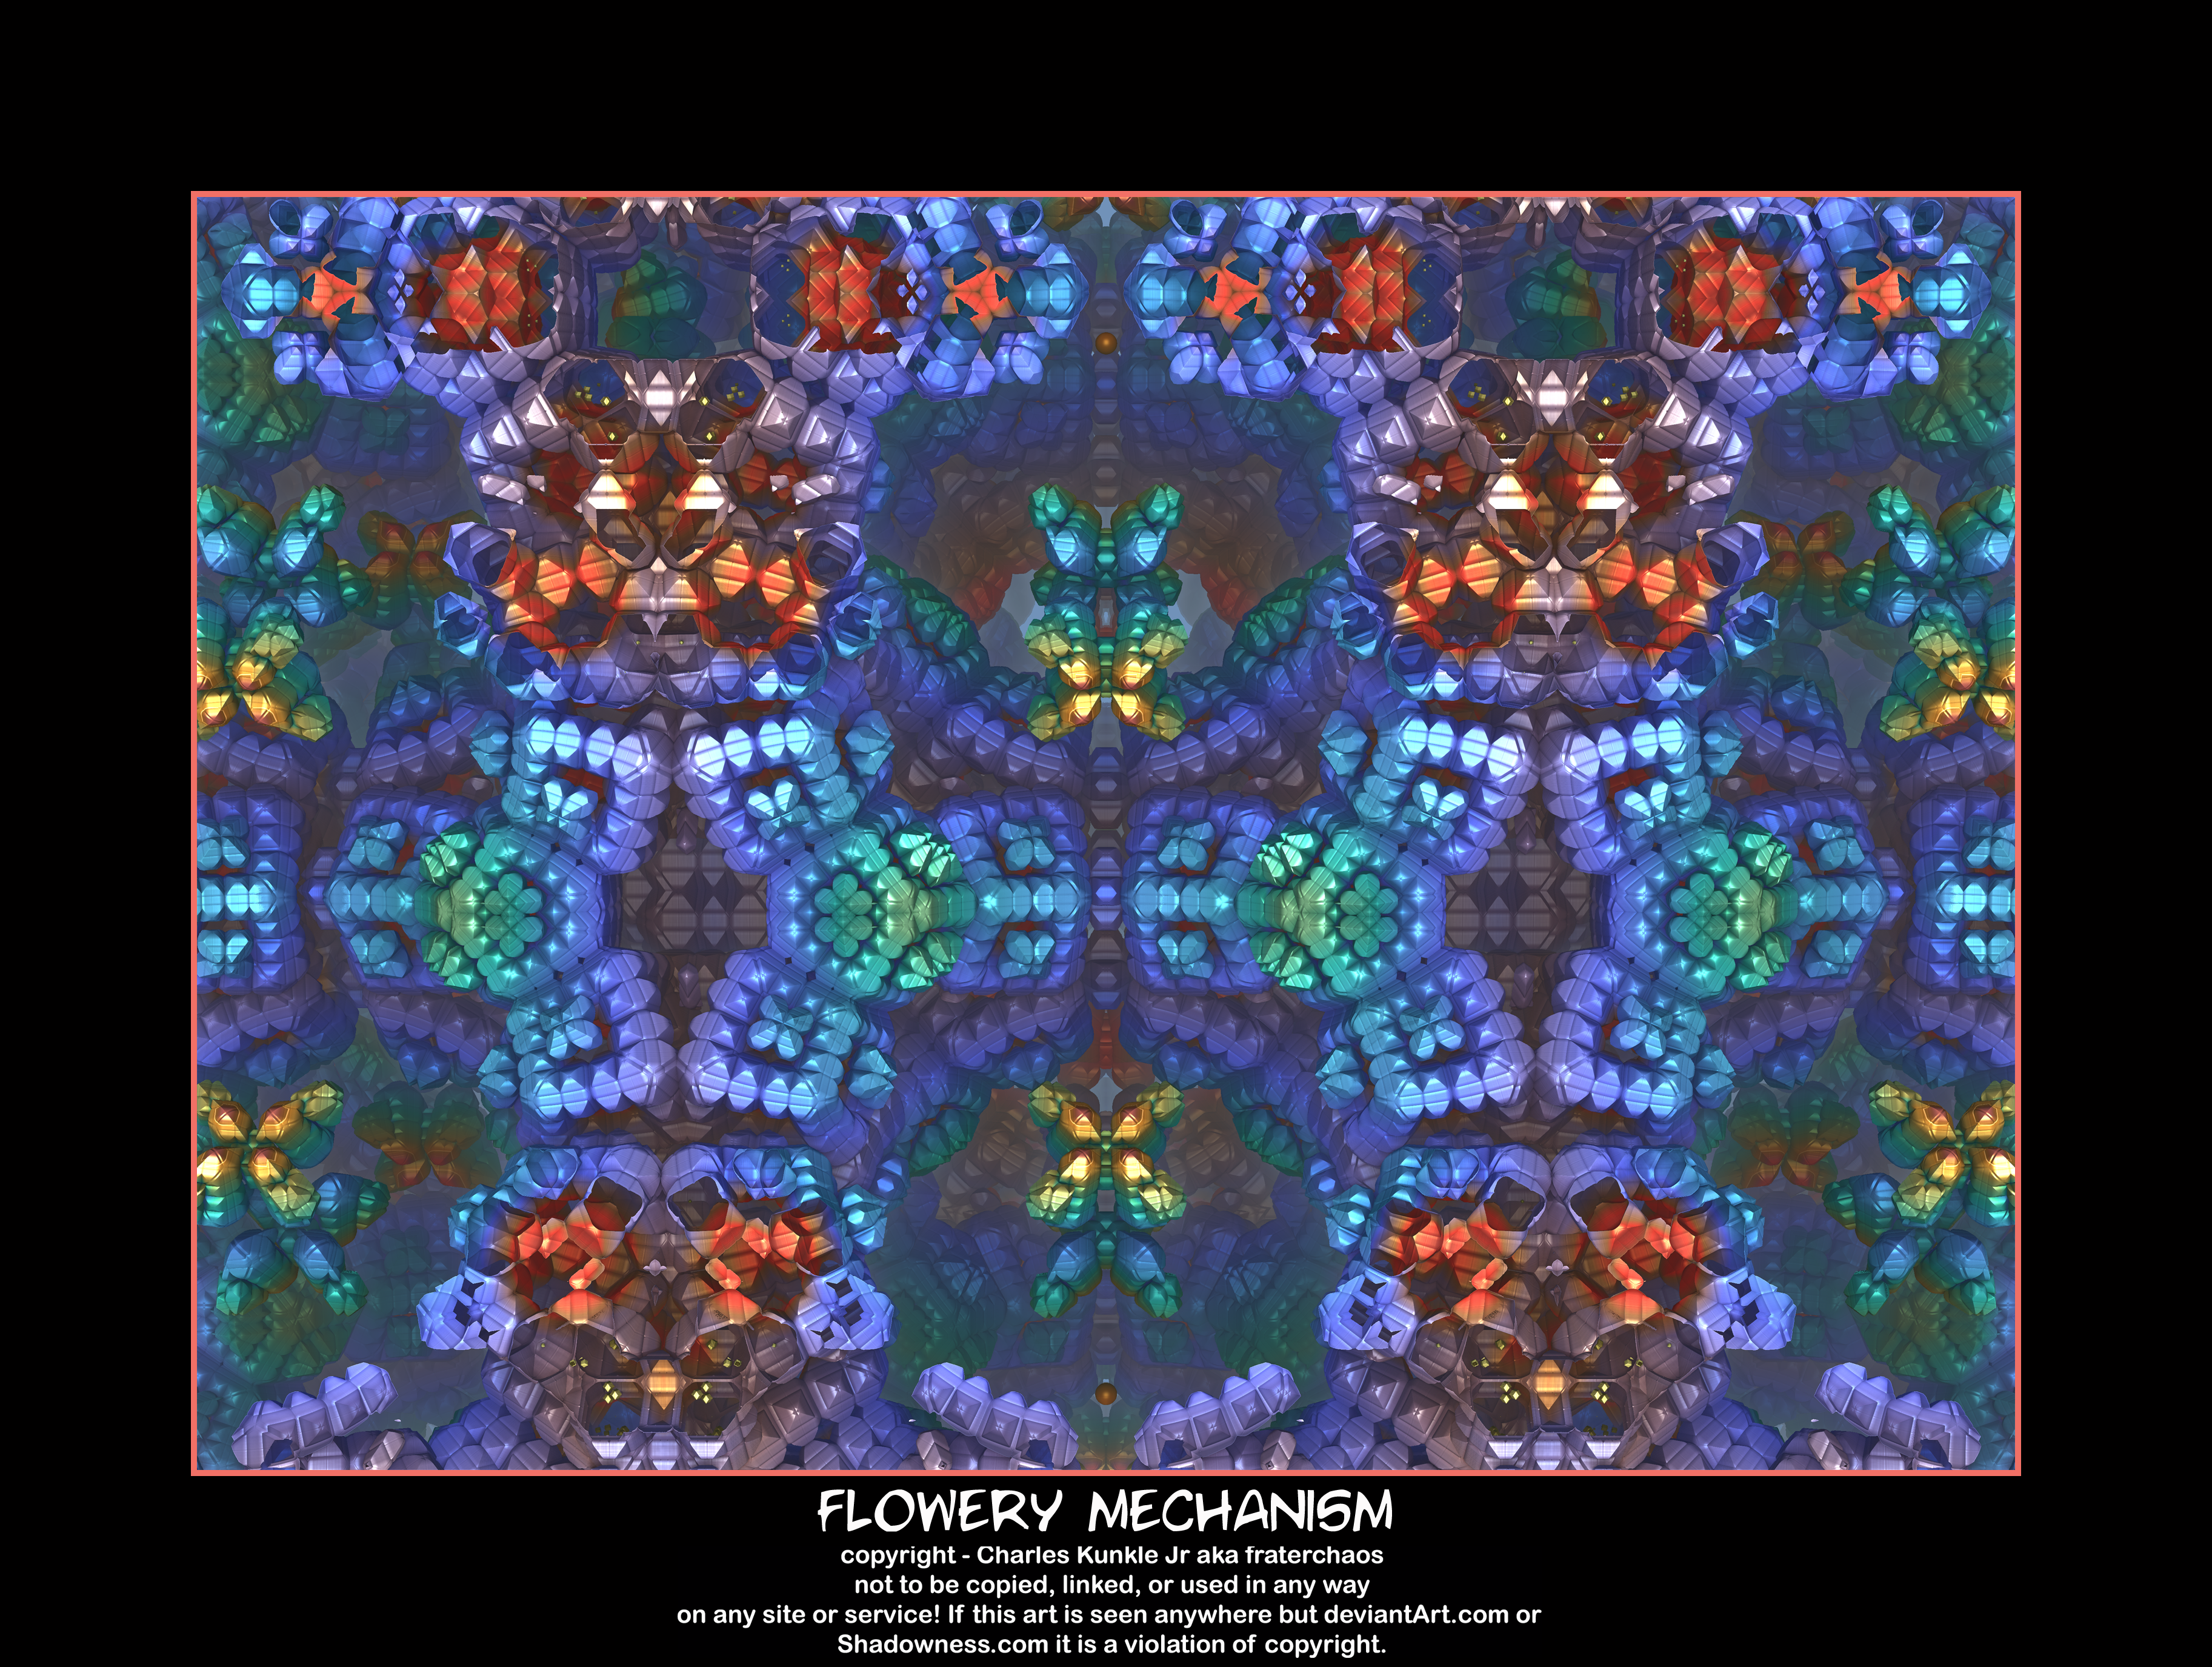 flowery mechanism by fraterchaos